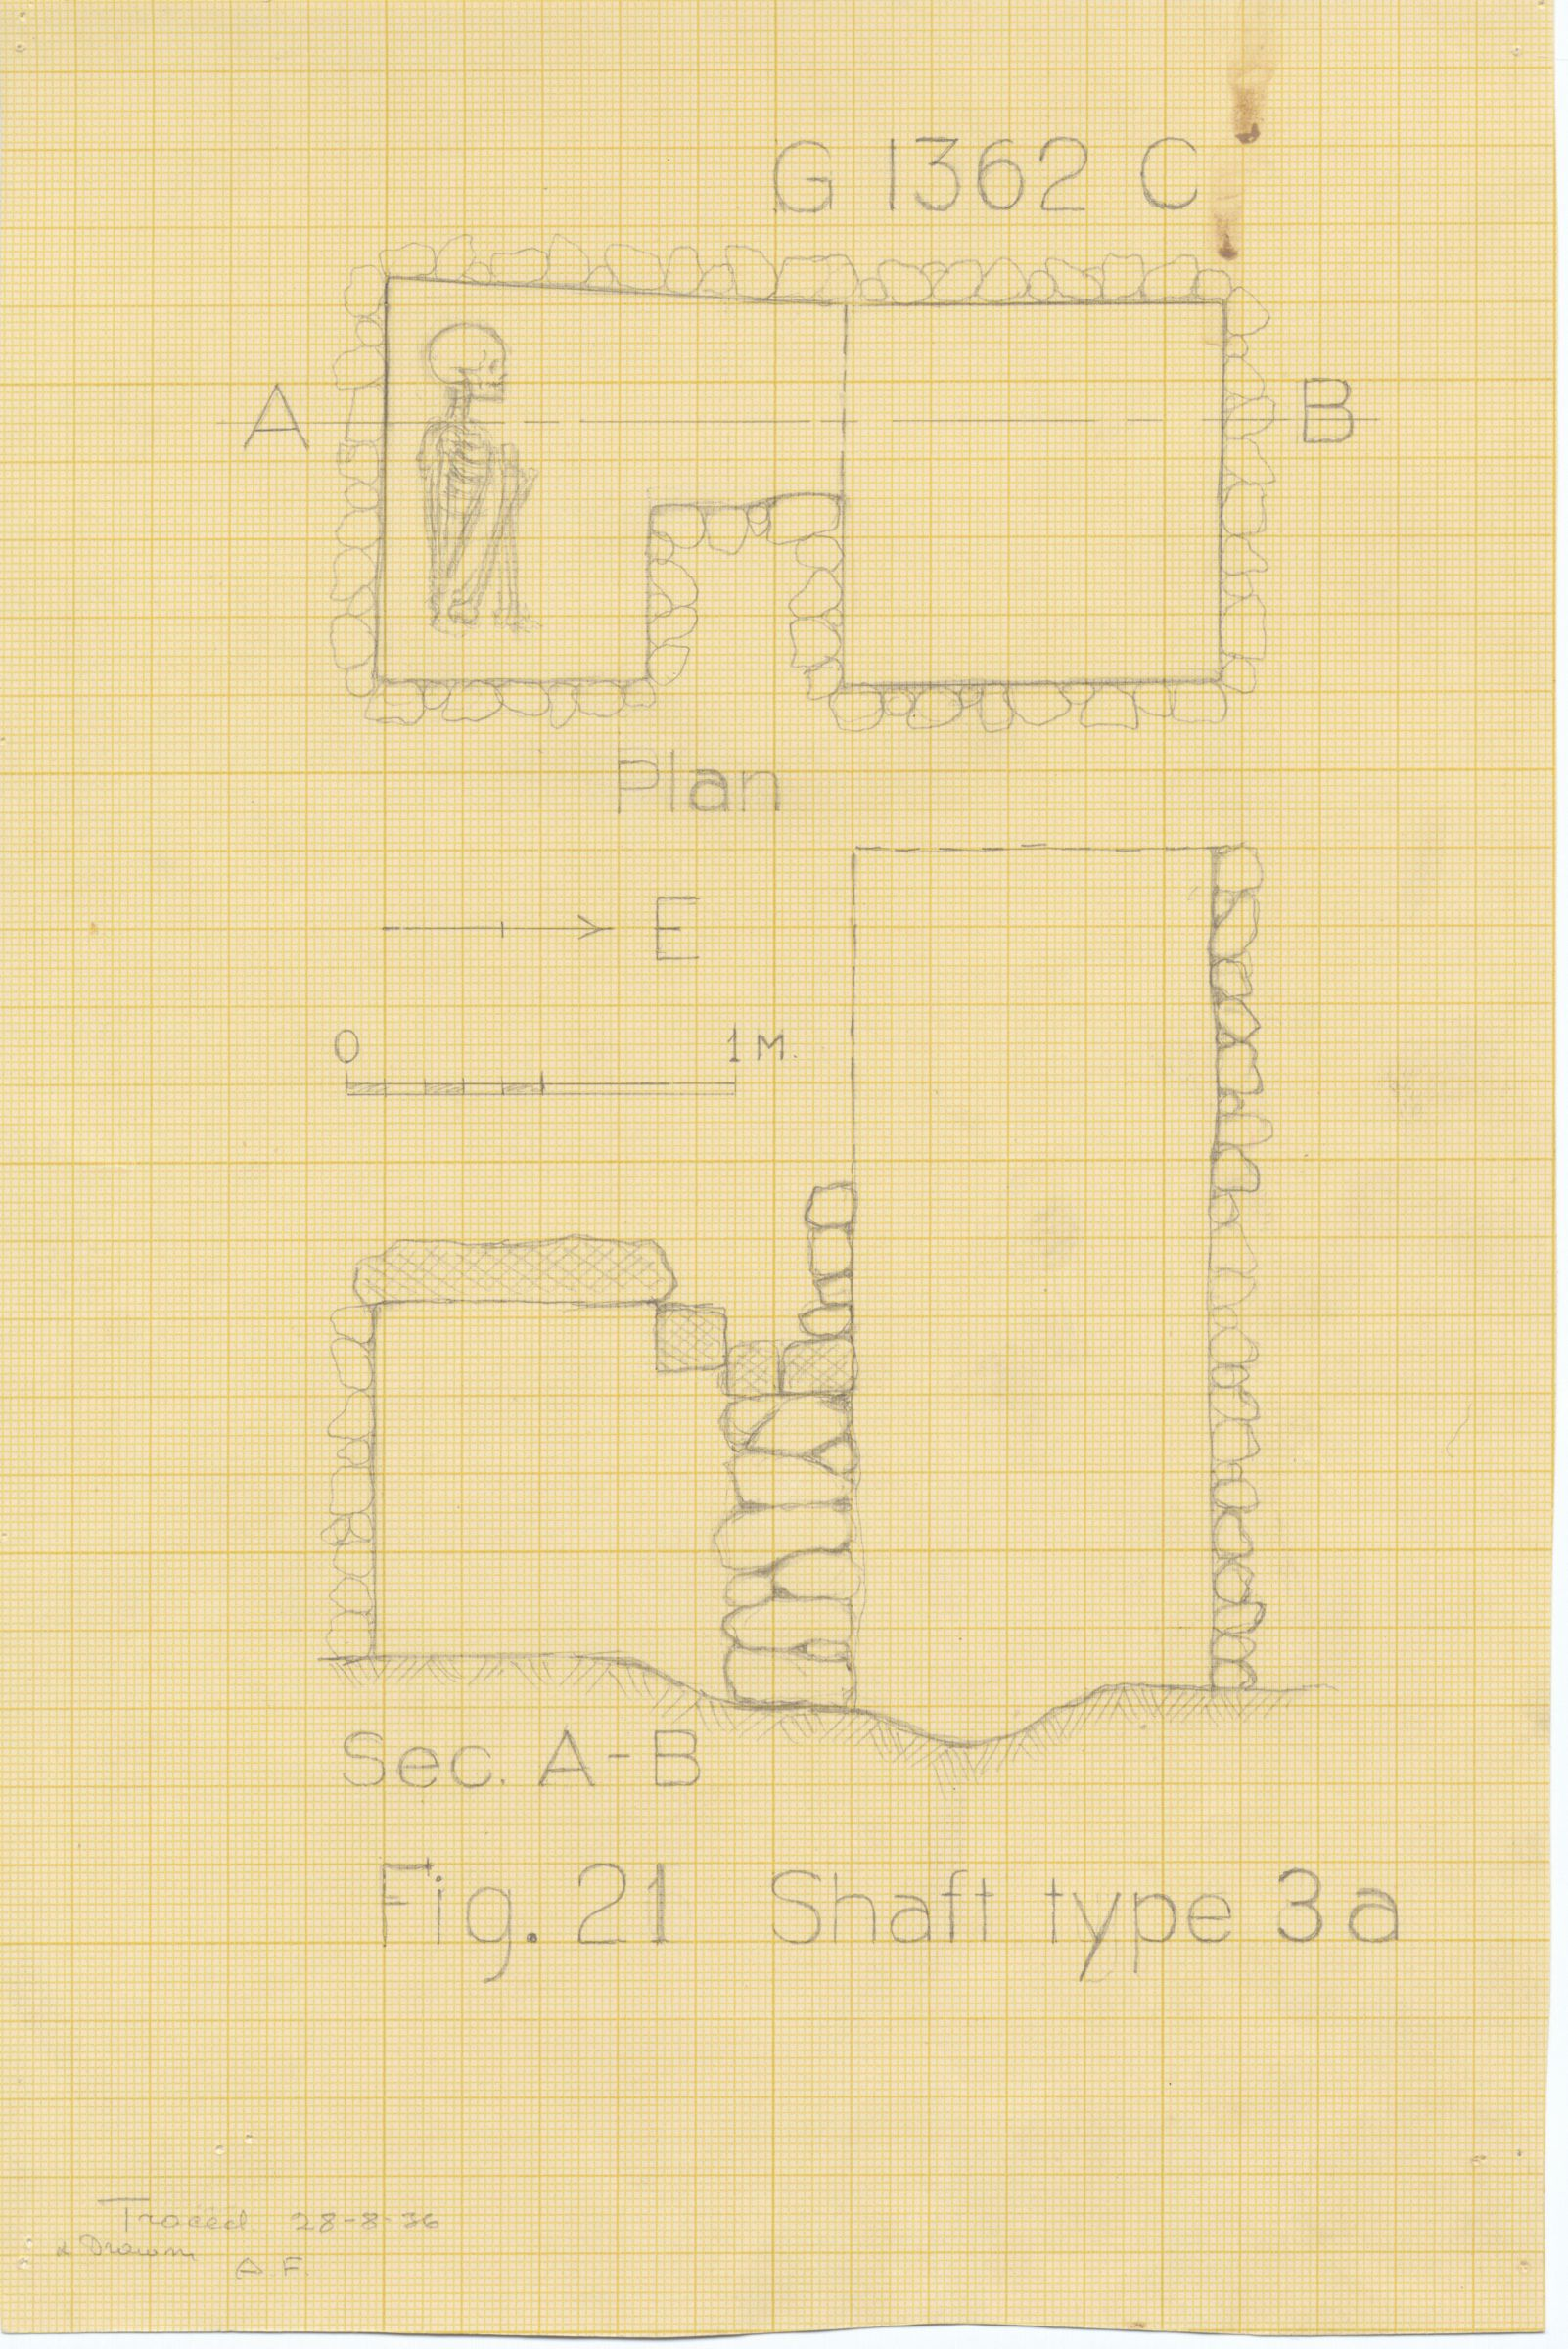 Maps and plans: G 1362, Shaft C